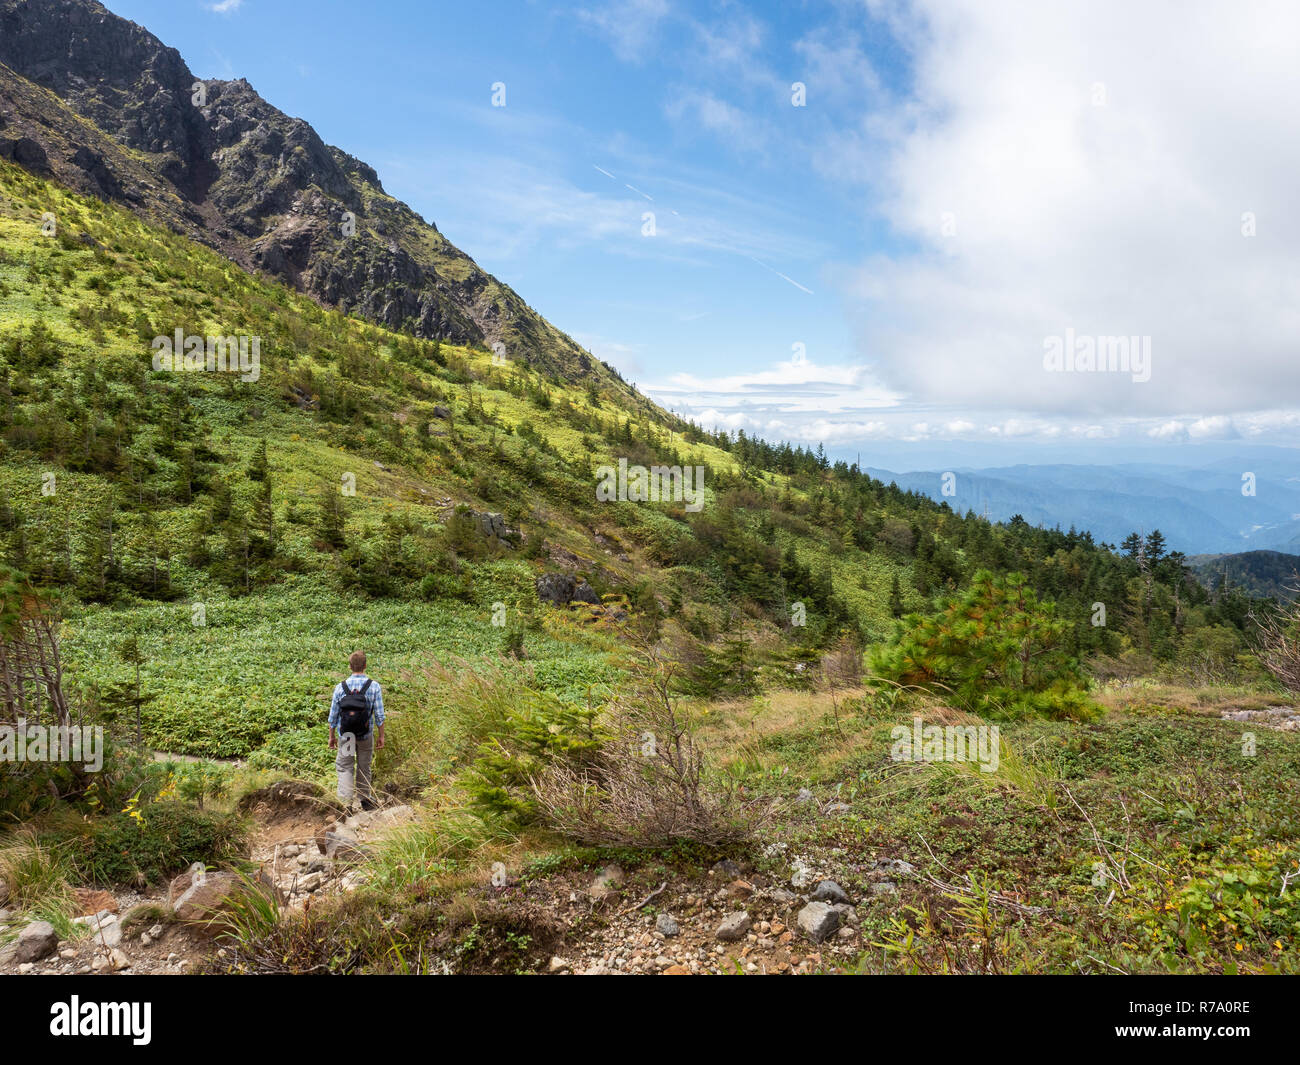 A hiker approaching the summit of Mount Yake, a volcano in Kamikōchi (the Upper Highlands) in the Hida Mountains, Nagano Prefecture, Japan. Stock Photo